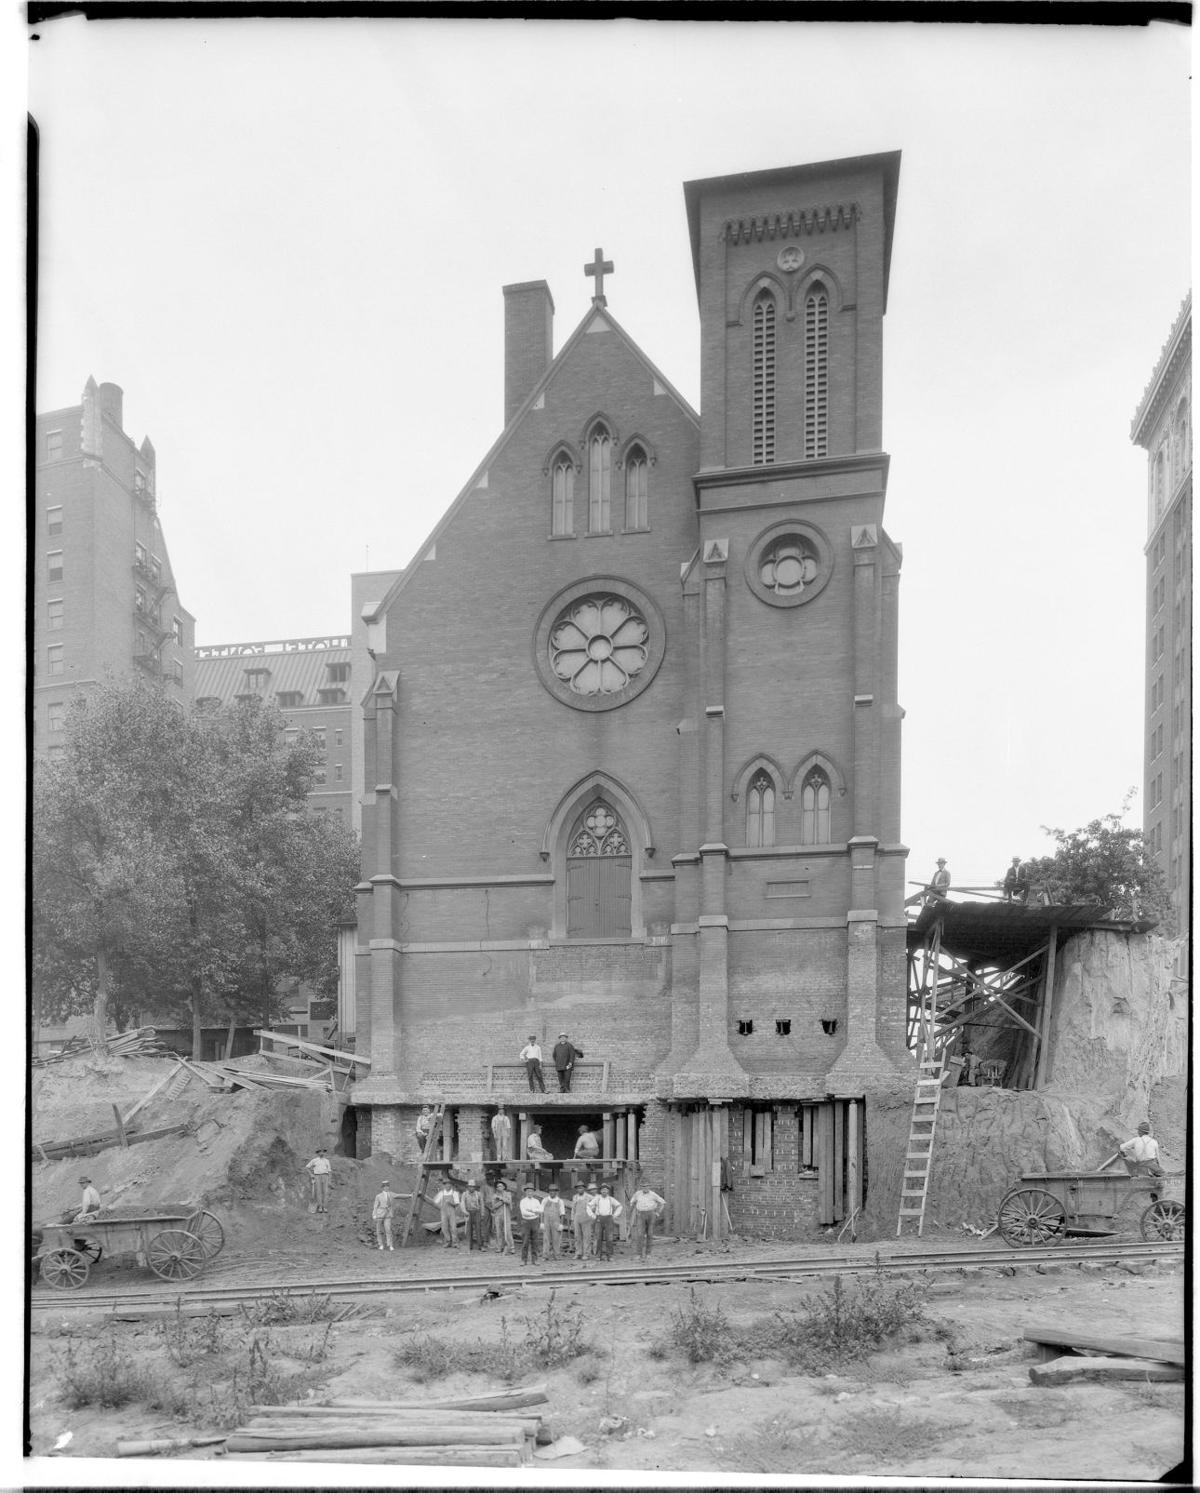 mary magdalene project The parish turns 150 next year and its leaders say the historic building needs a new roof, a project the omaha archdiocese says will require a major fundraising drive.